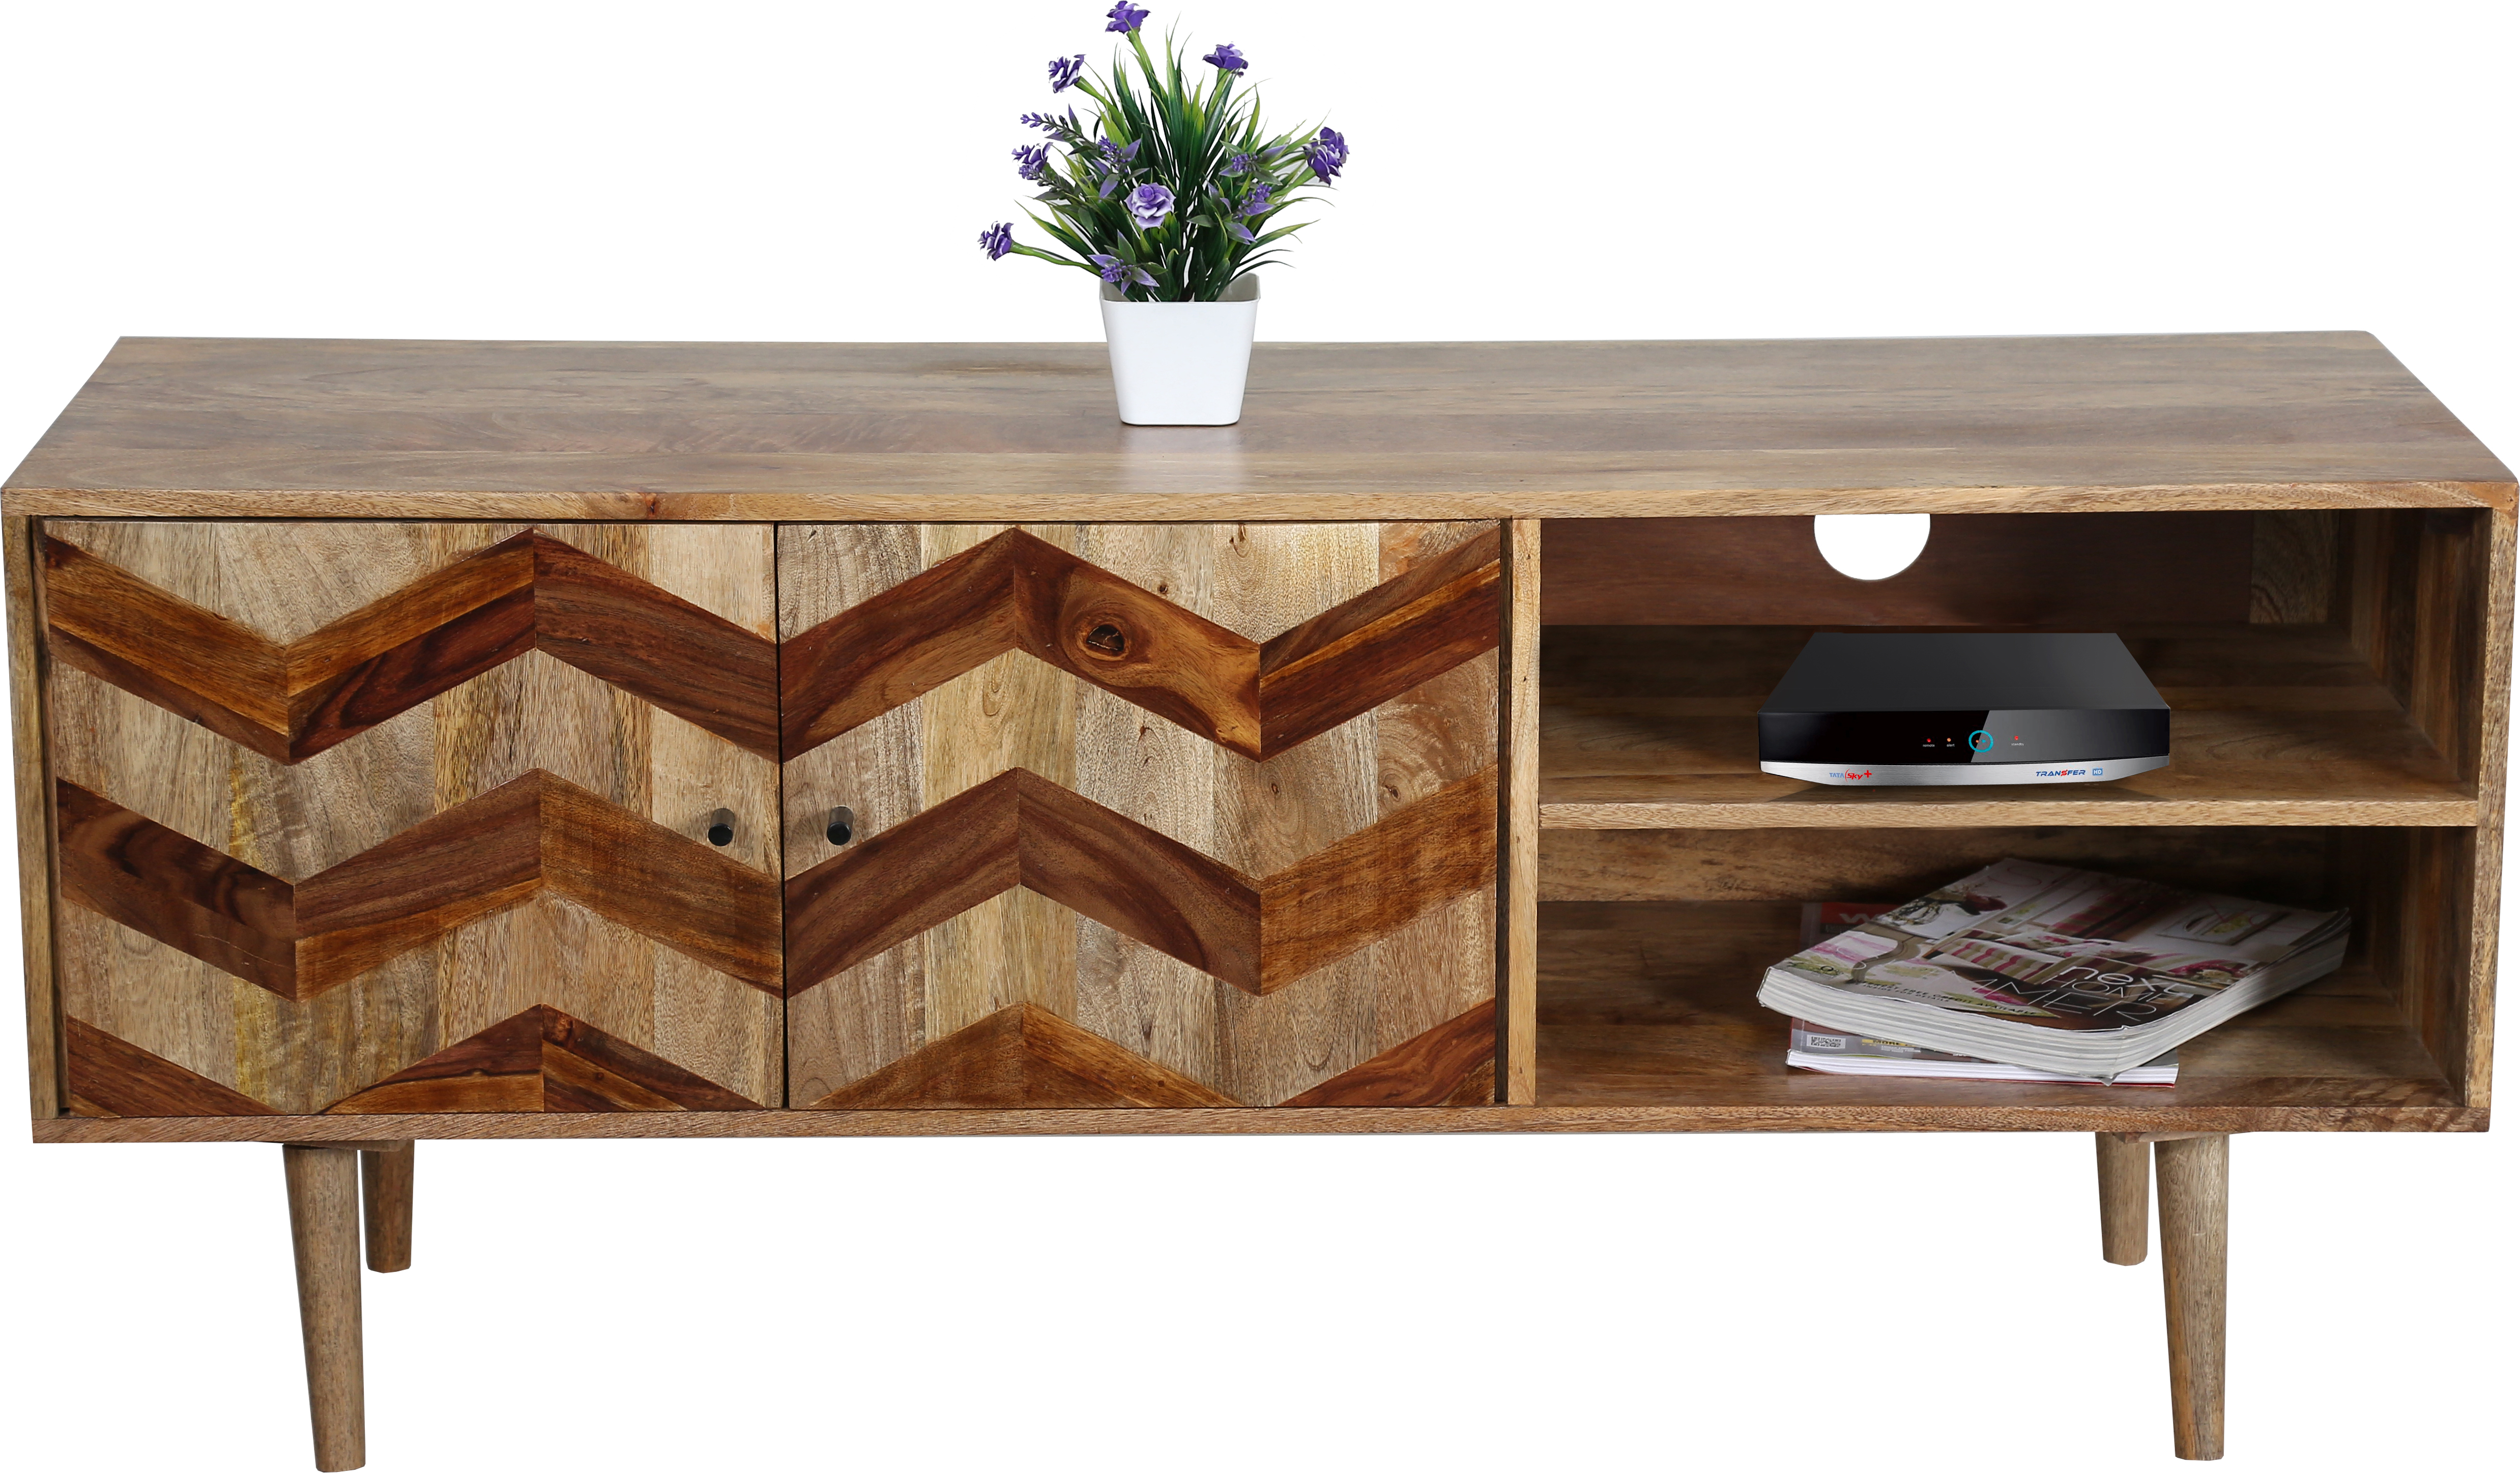 Zigzag Themed Tv Cabinet In Light Mango Wood With Wooden Legs # Wooden Art Meuble Tv